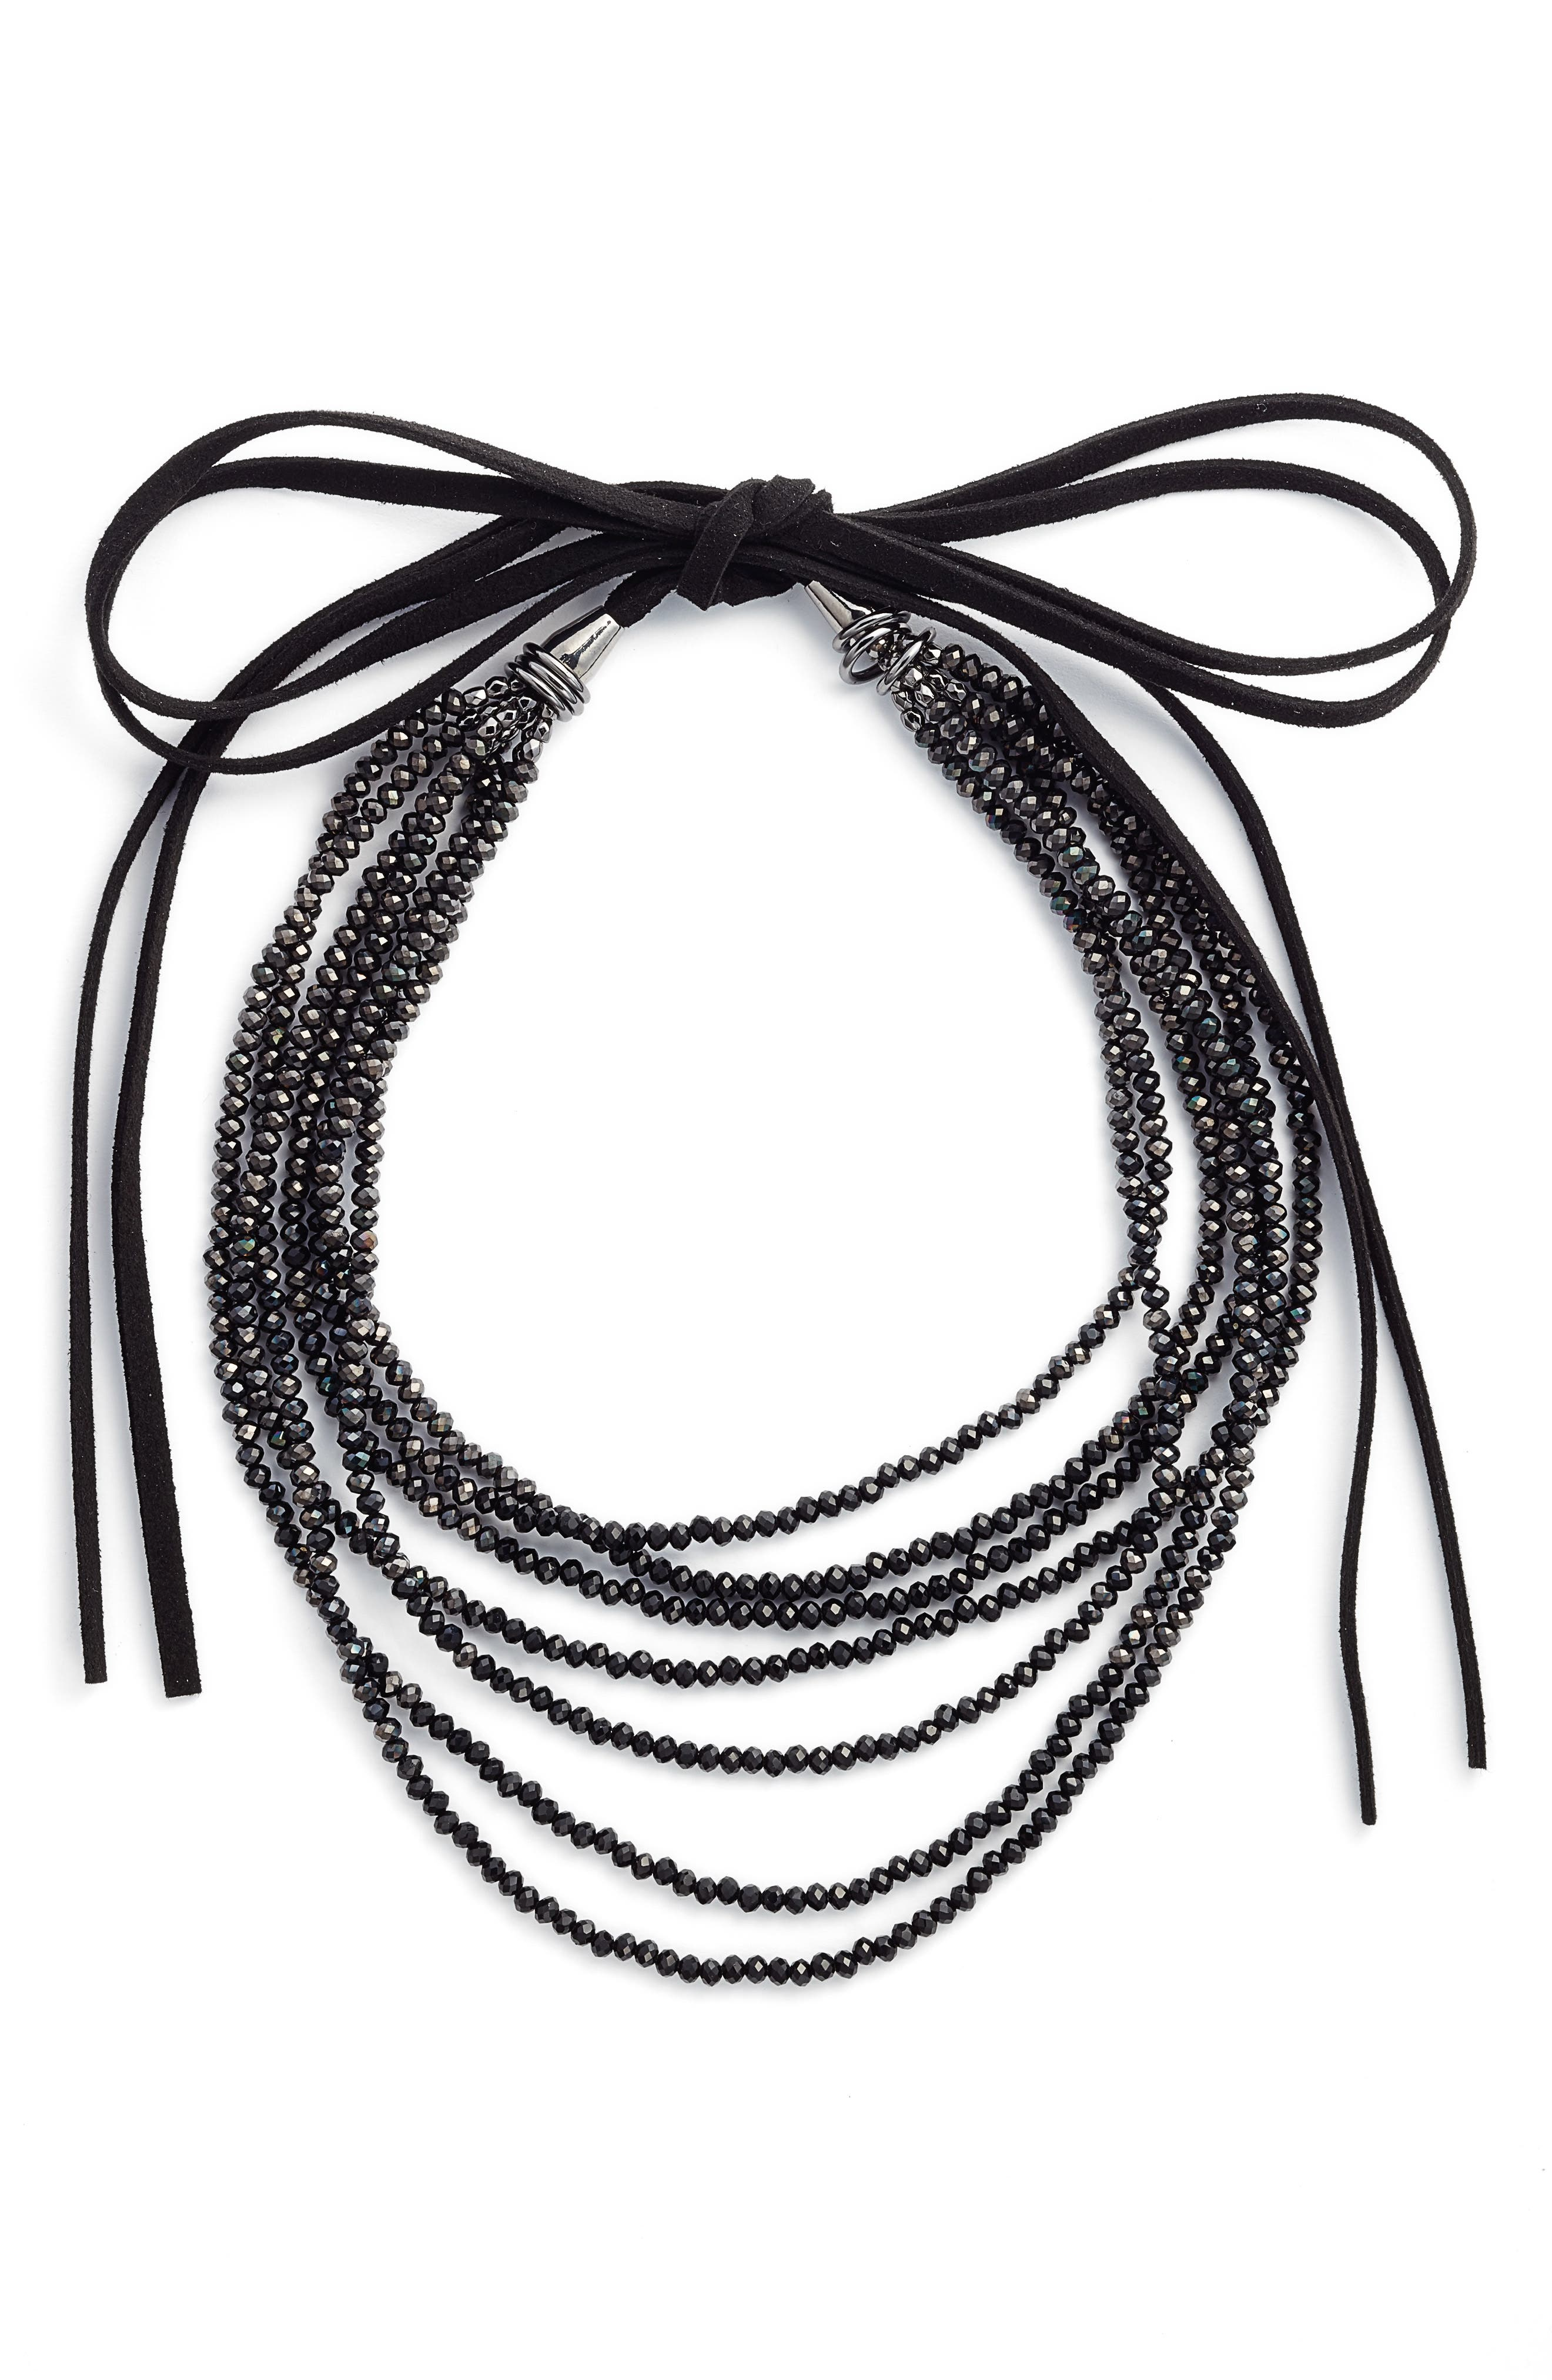 CRISTABELLE Crystal Beaded Tie Necklace